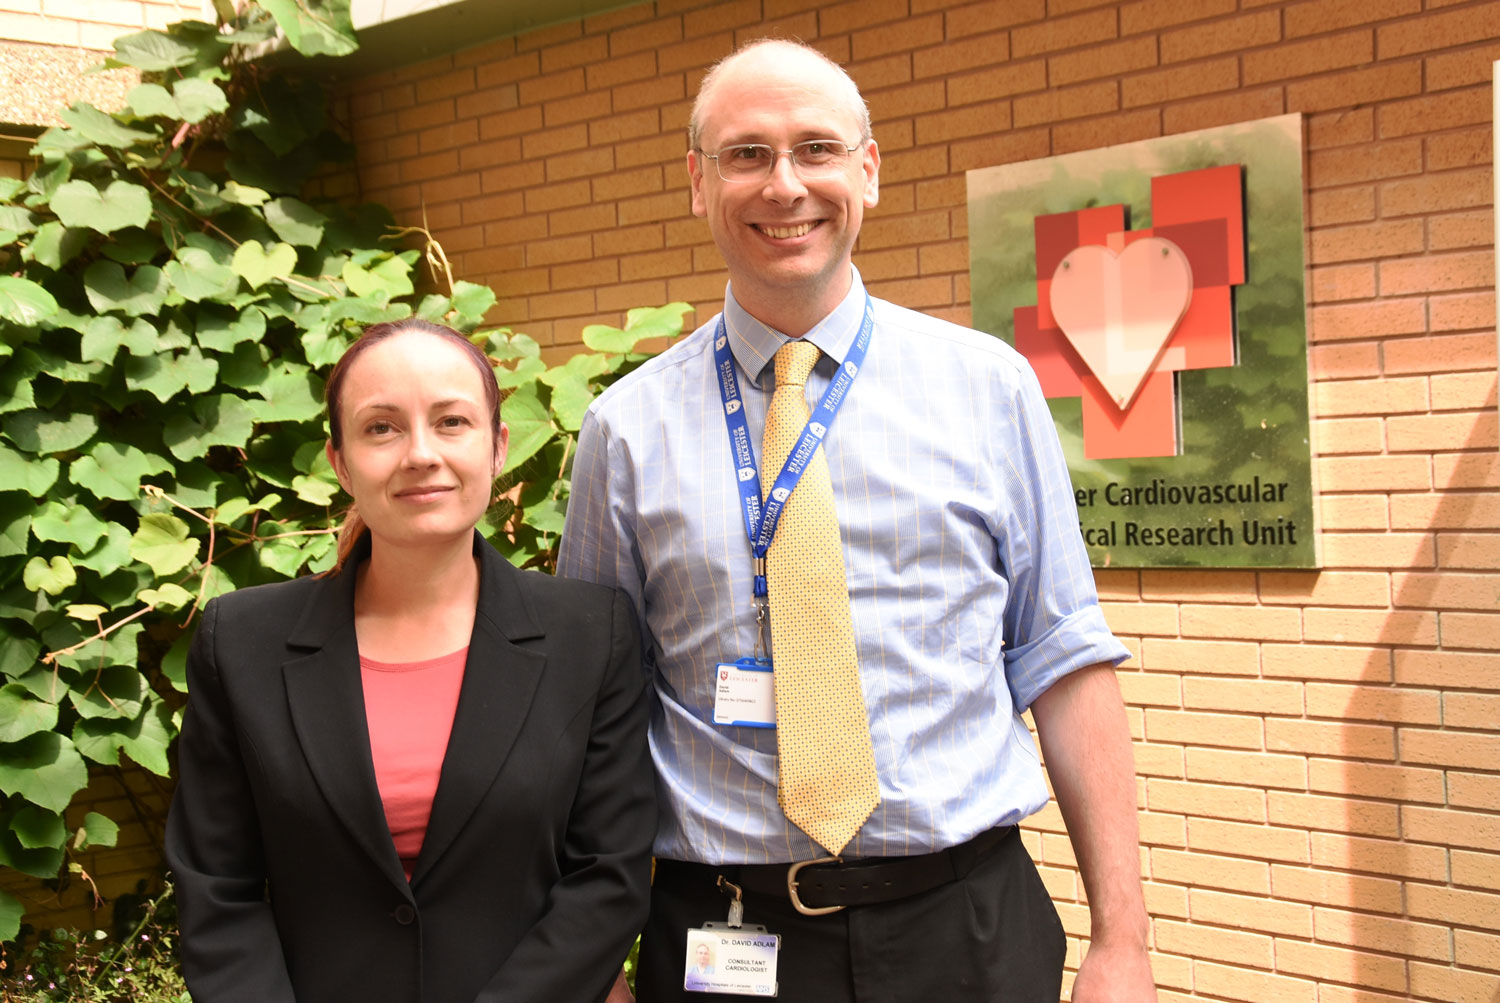 Dr Alice Wood and Dr David Adlam, Leicester University SCAD research project